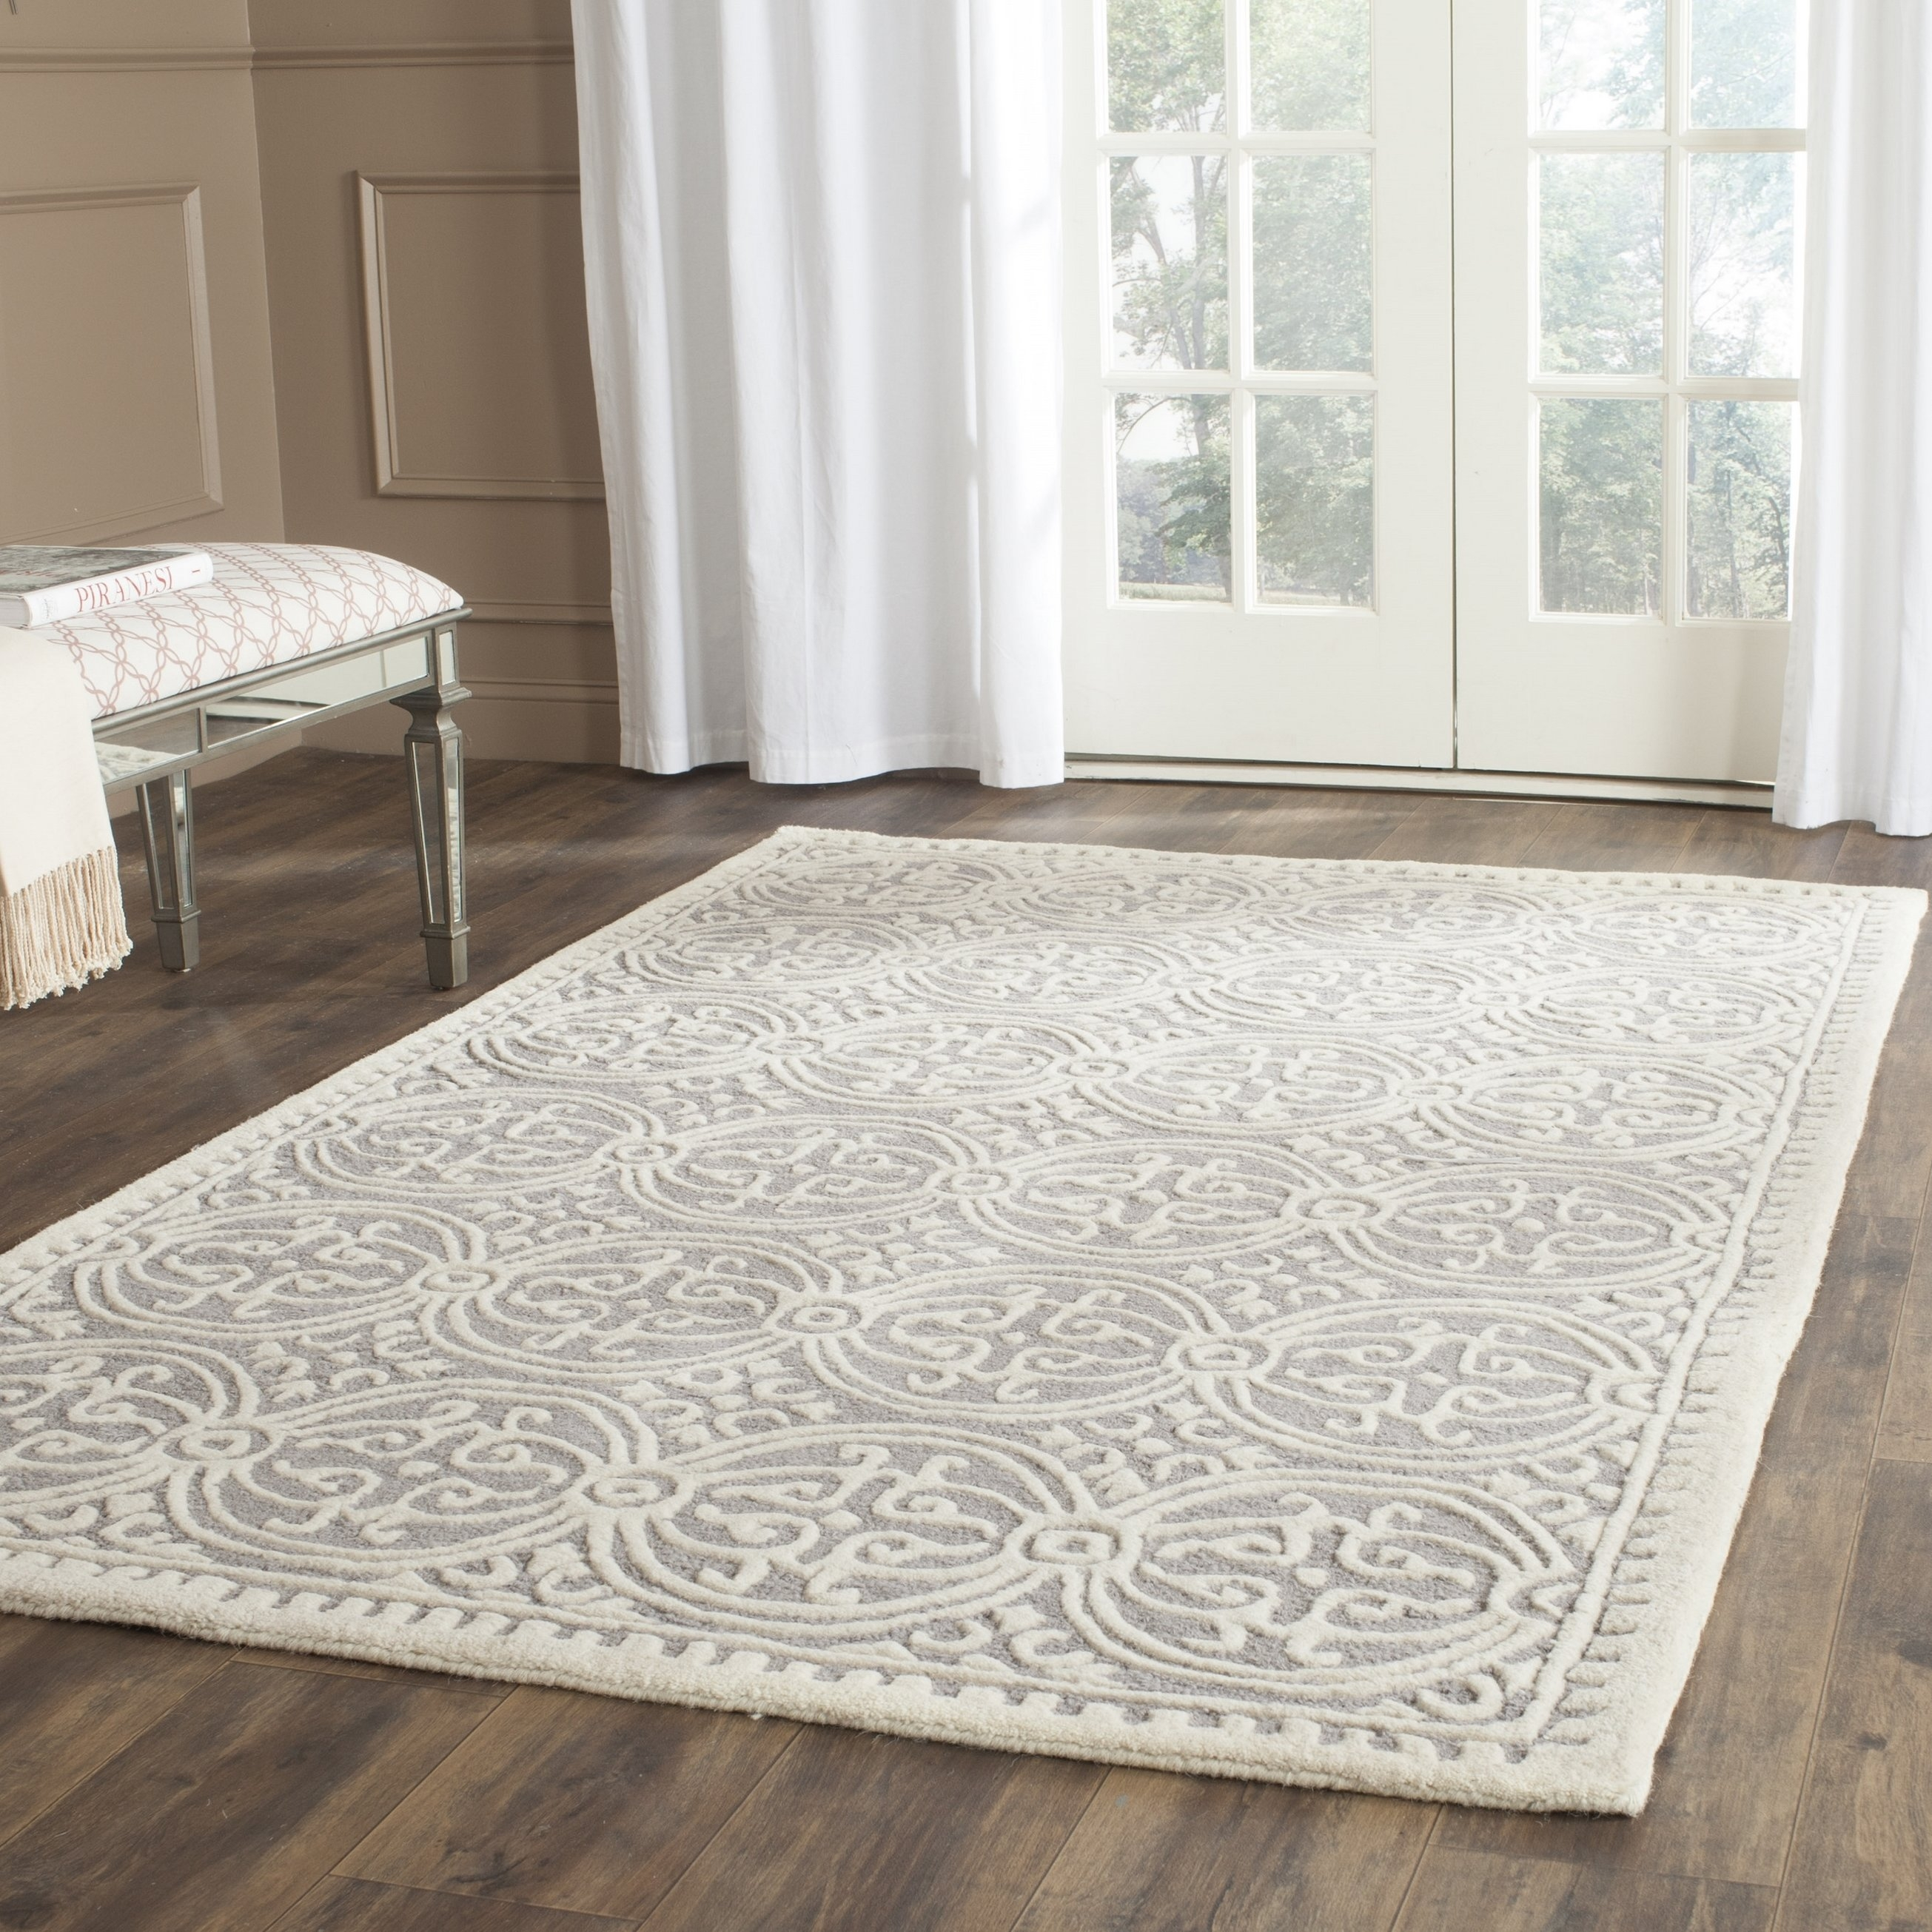 Popular Photo of Hand Tufted Wool Area Rugs